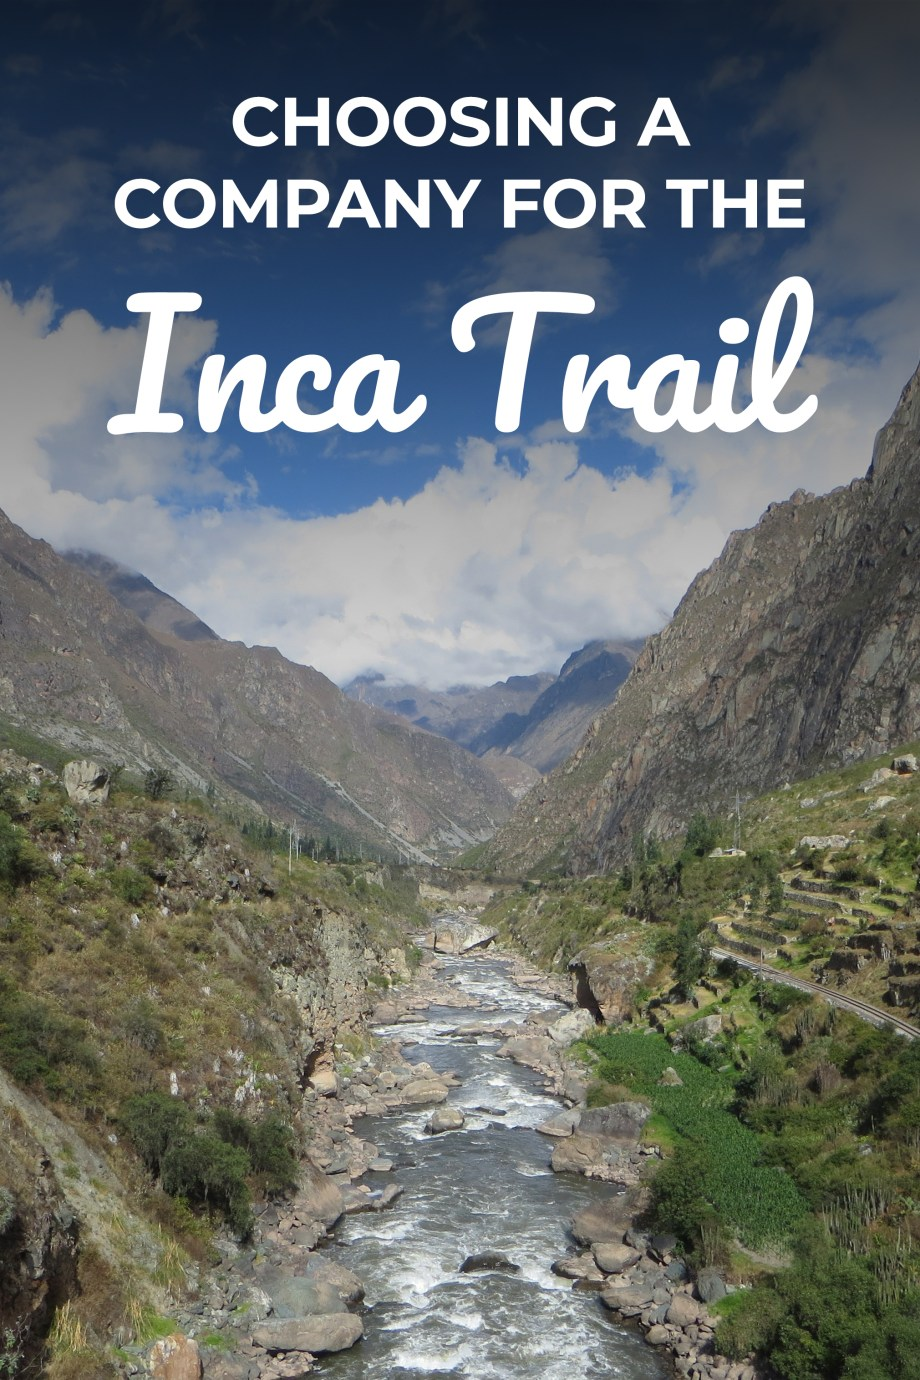 A once in a lifetime trip, walking the original Inca pathways to the 550 year old citadel of Machu Picchu. There are hundreds of companies offering Inca Trail treks and it's difficult to know which one to choose. These are the things to watch out for when researching your trek.